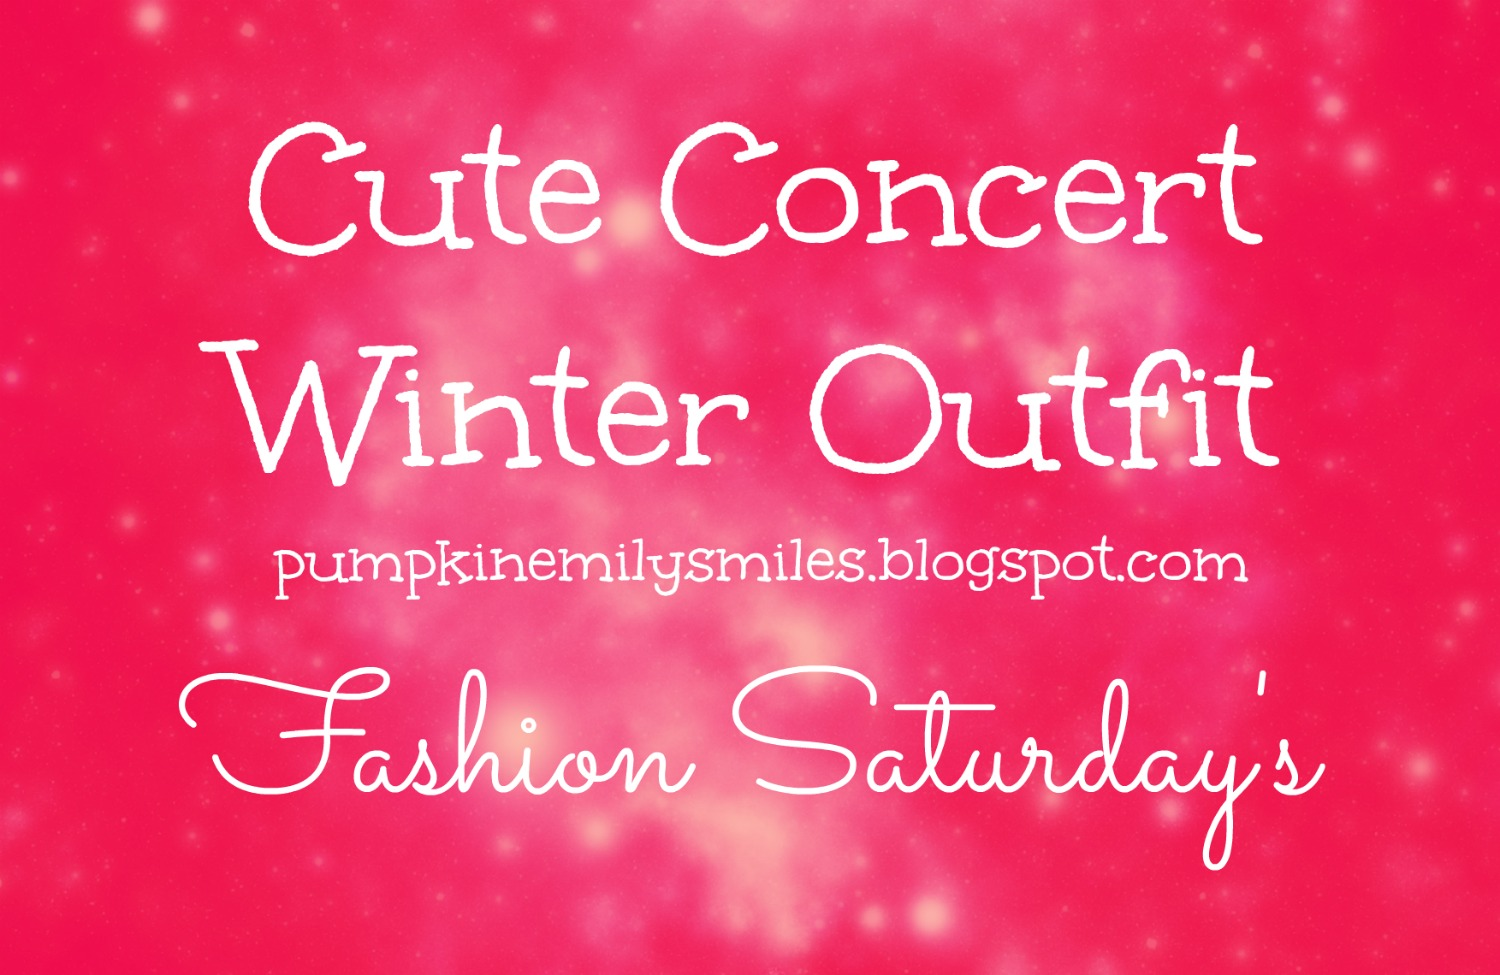 Cute Concert Winter Outfit Fashion Saturday's